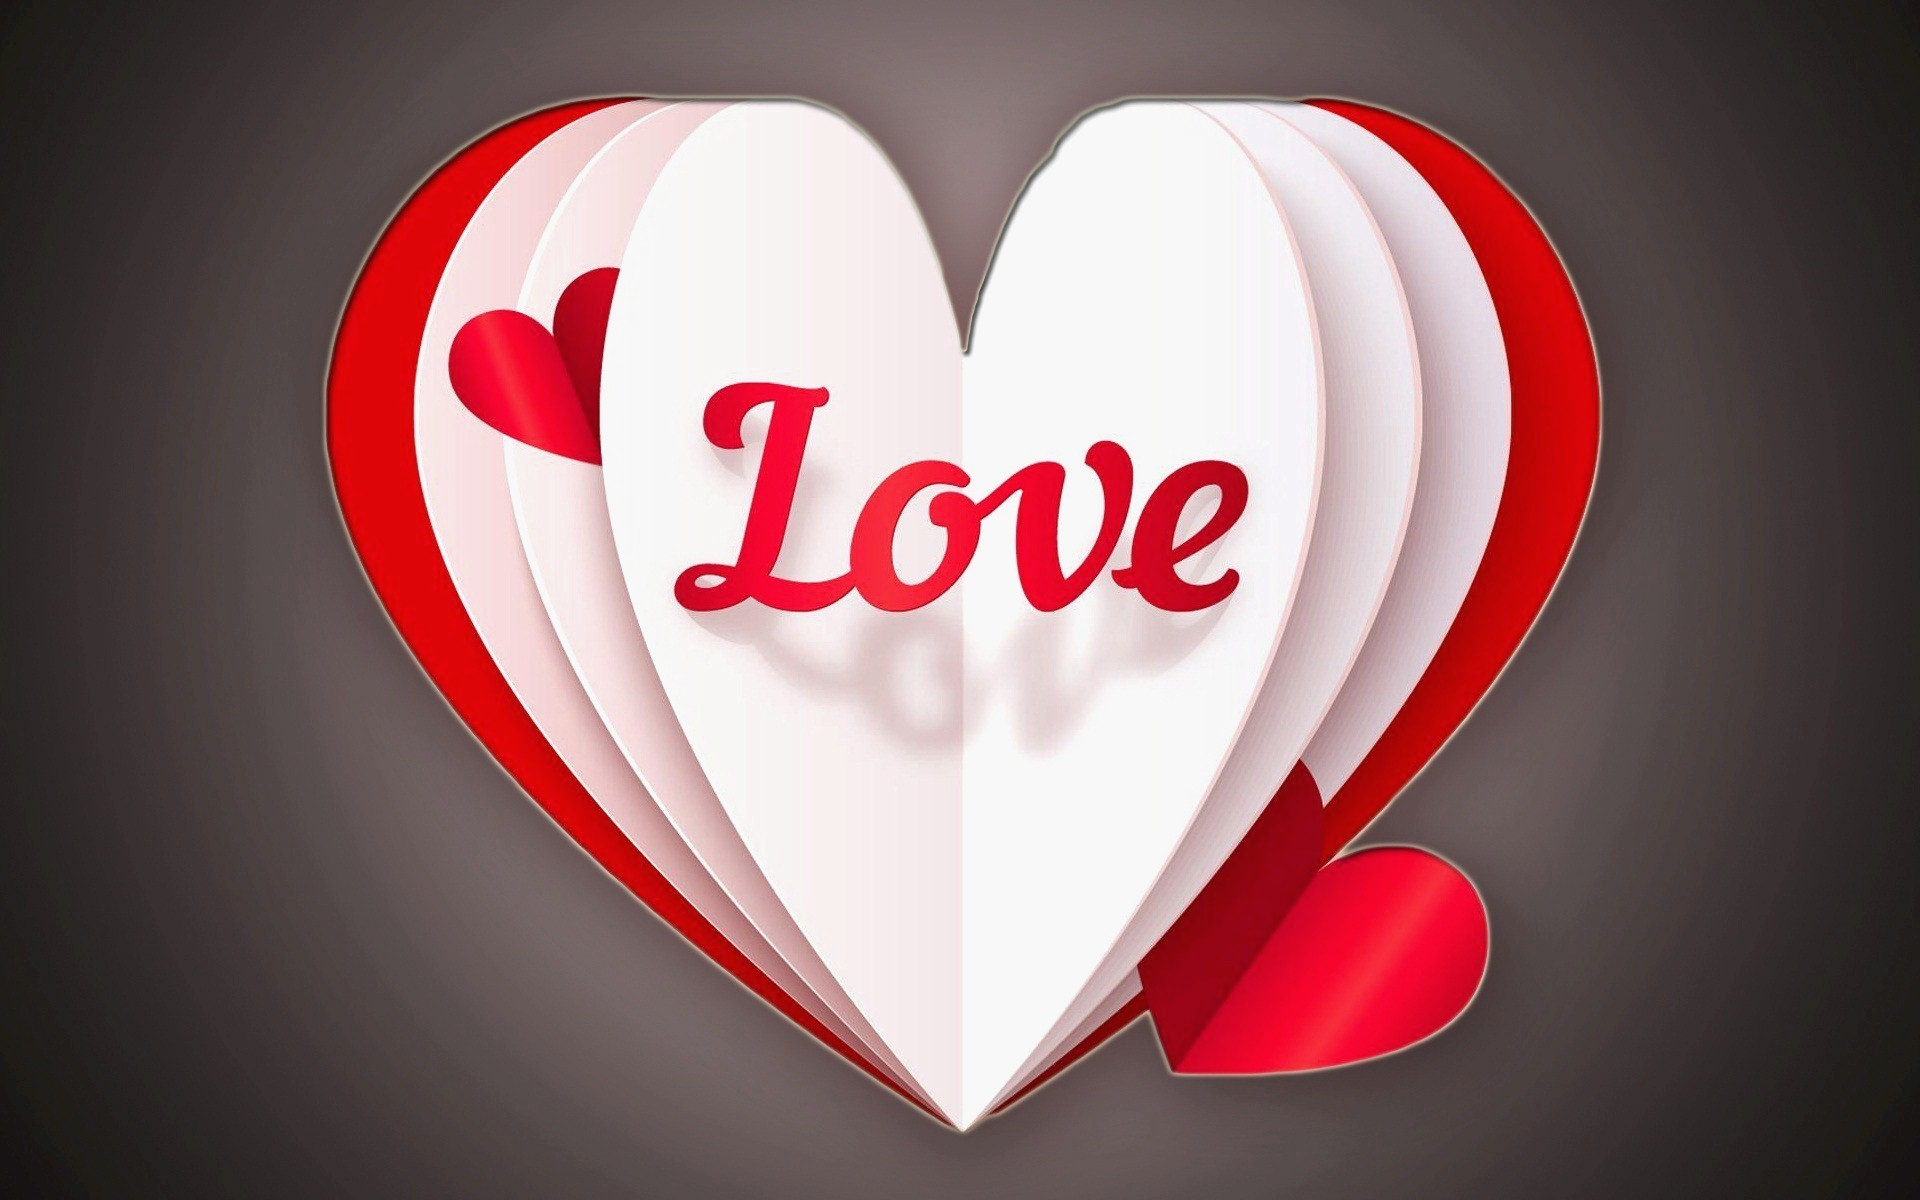 Love Heart Wallpapers 2018 (69+ background pictures)